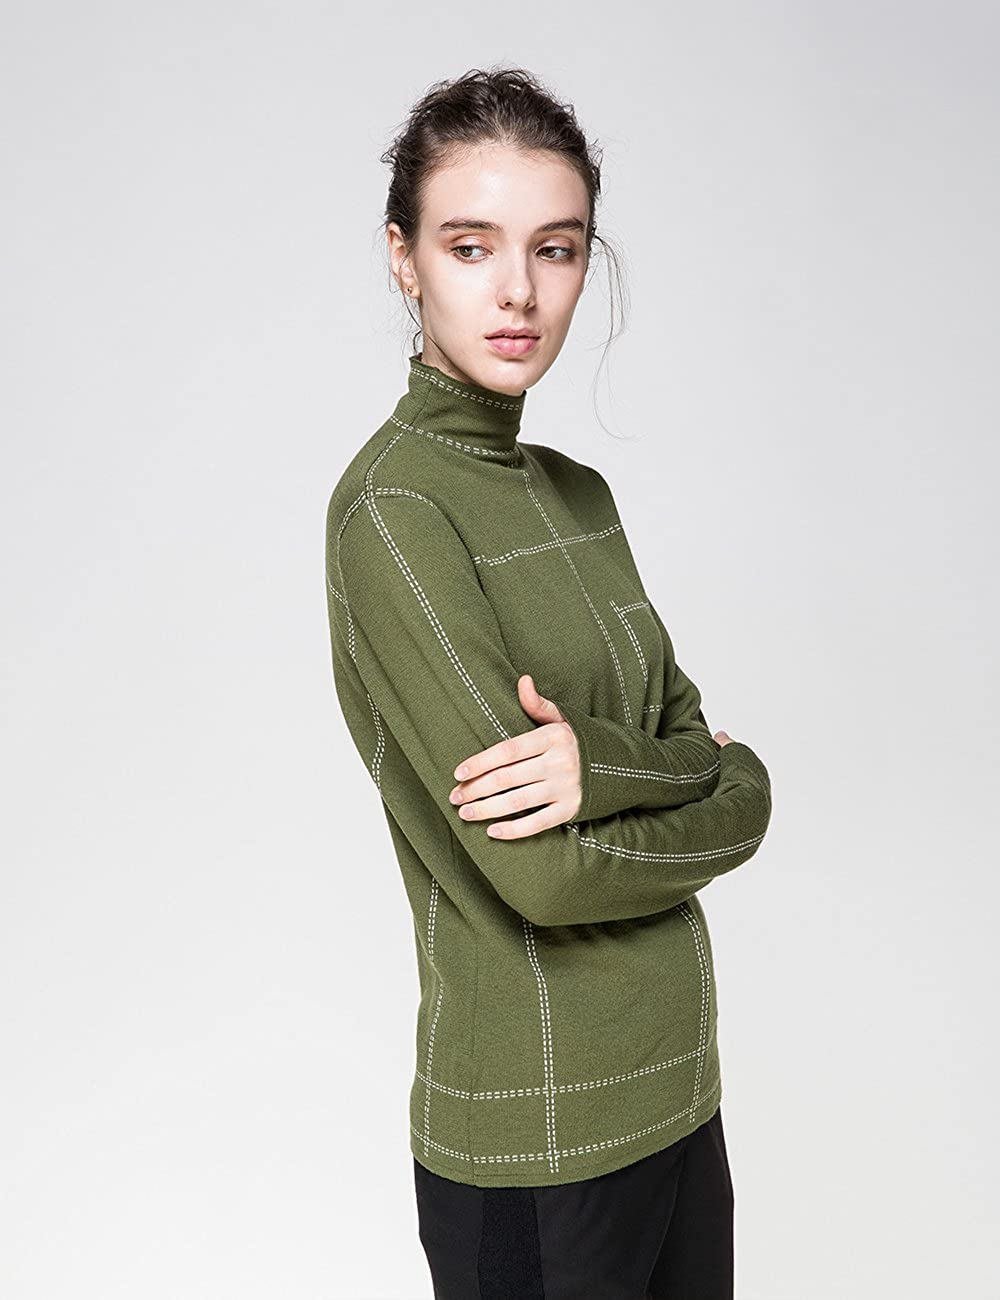 Cas-Lady/'s 100/% Pure Wool Long Sleeve Pullover Sweater